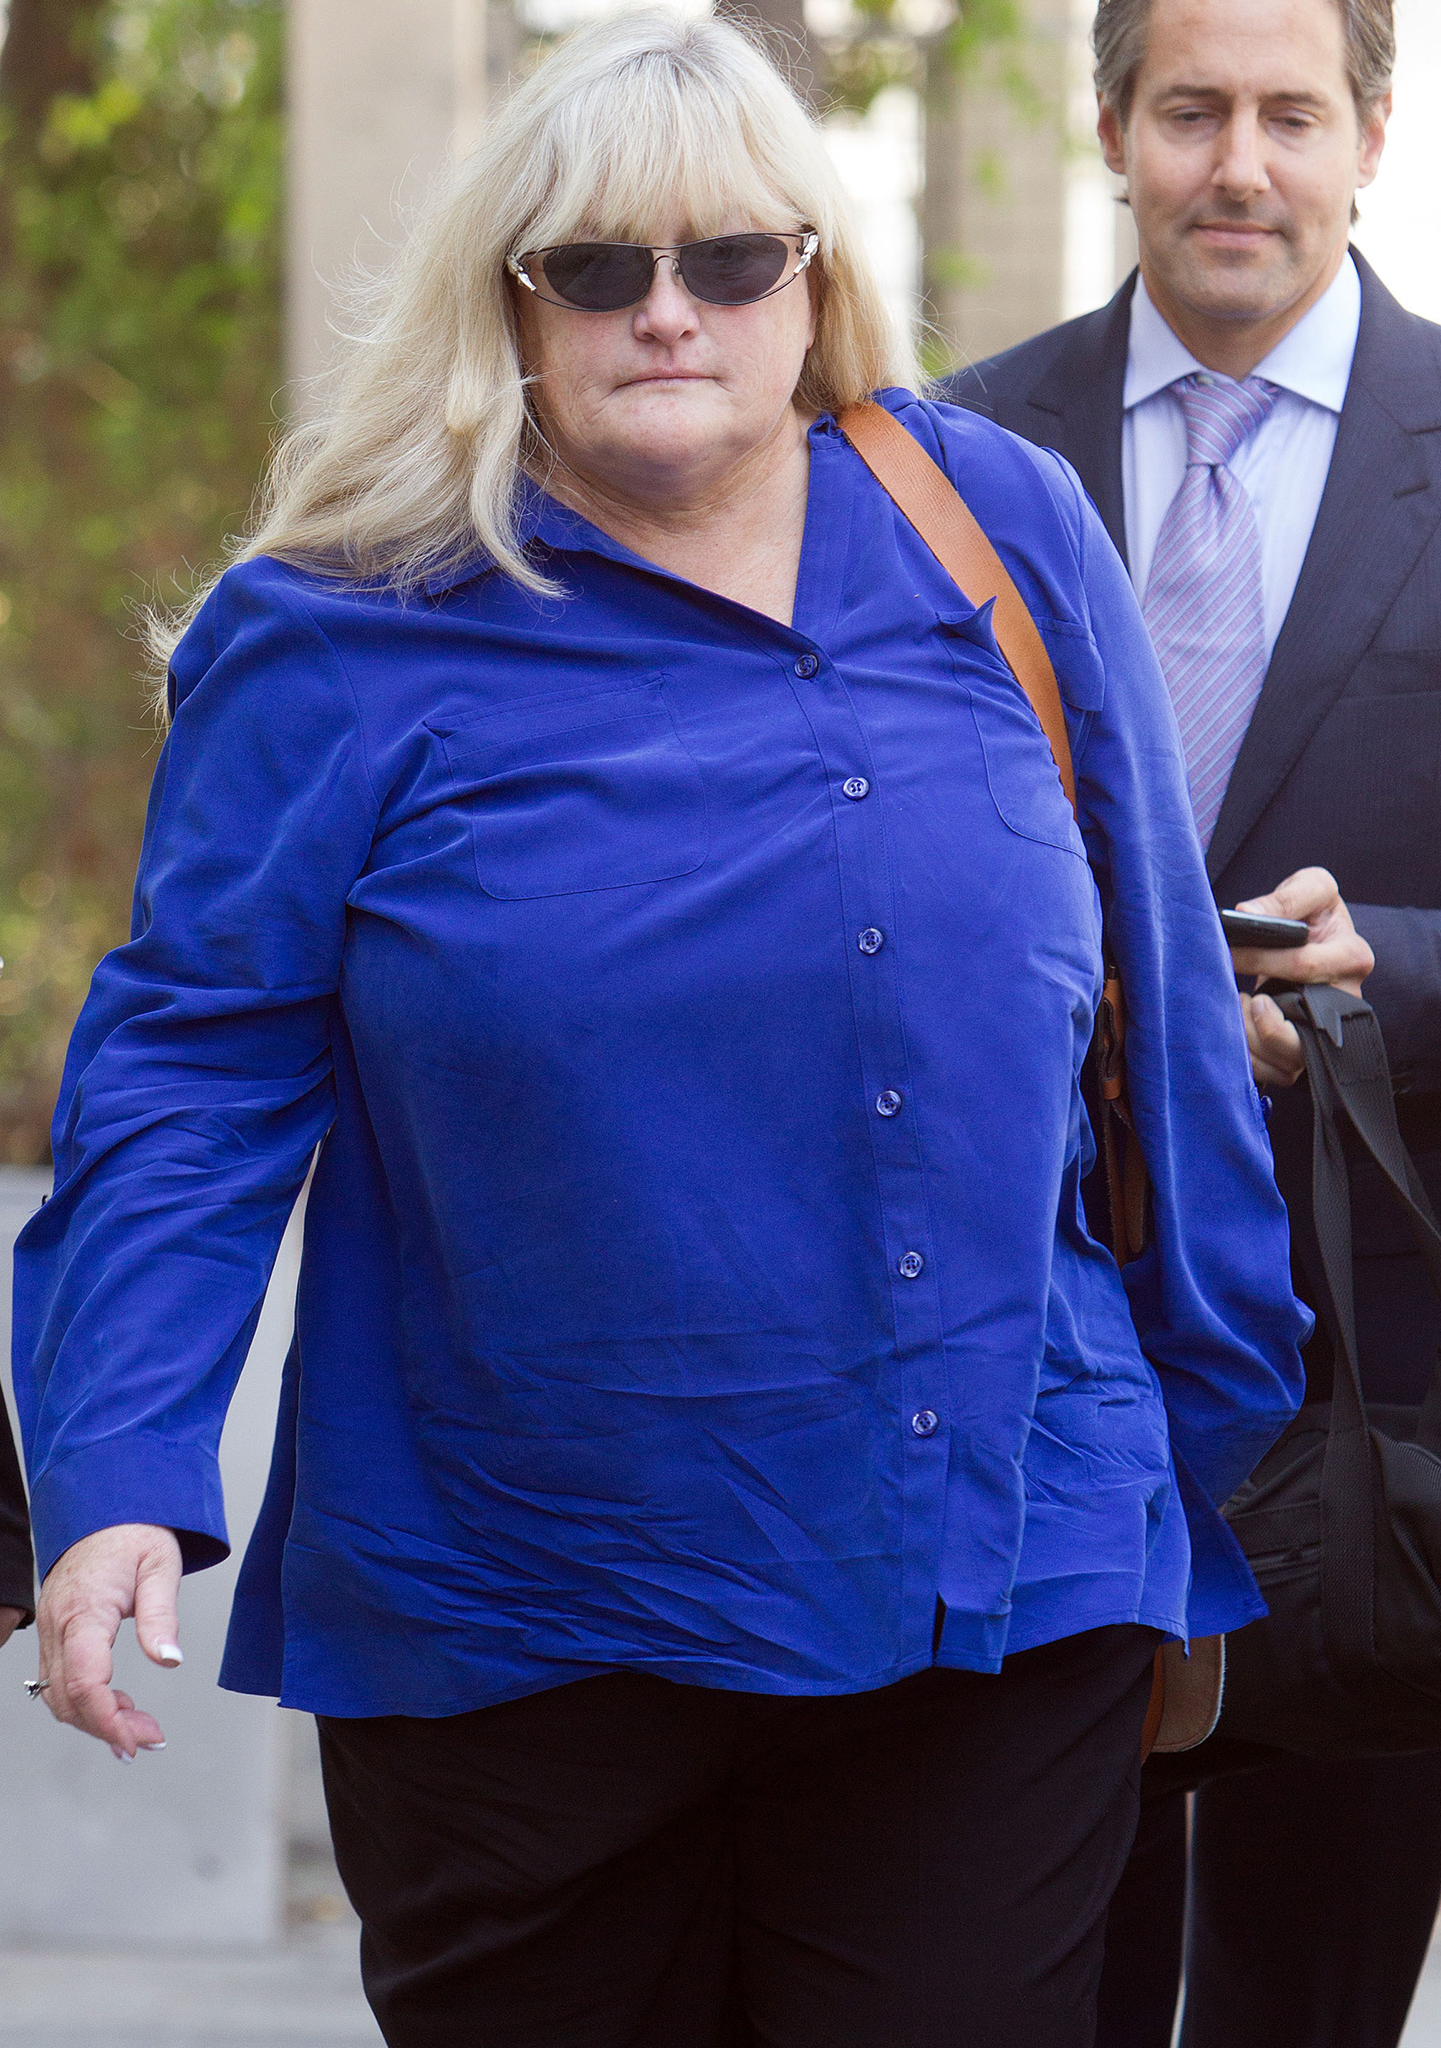 Debbie Rowe leaving court. (FameFlynet)